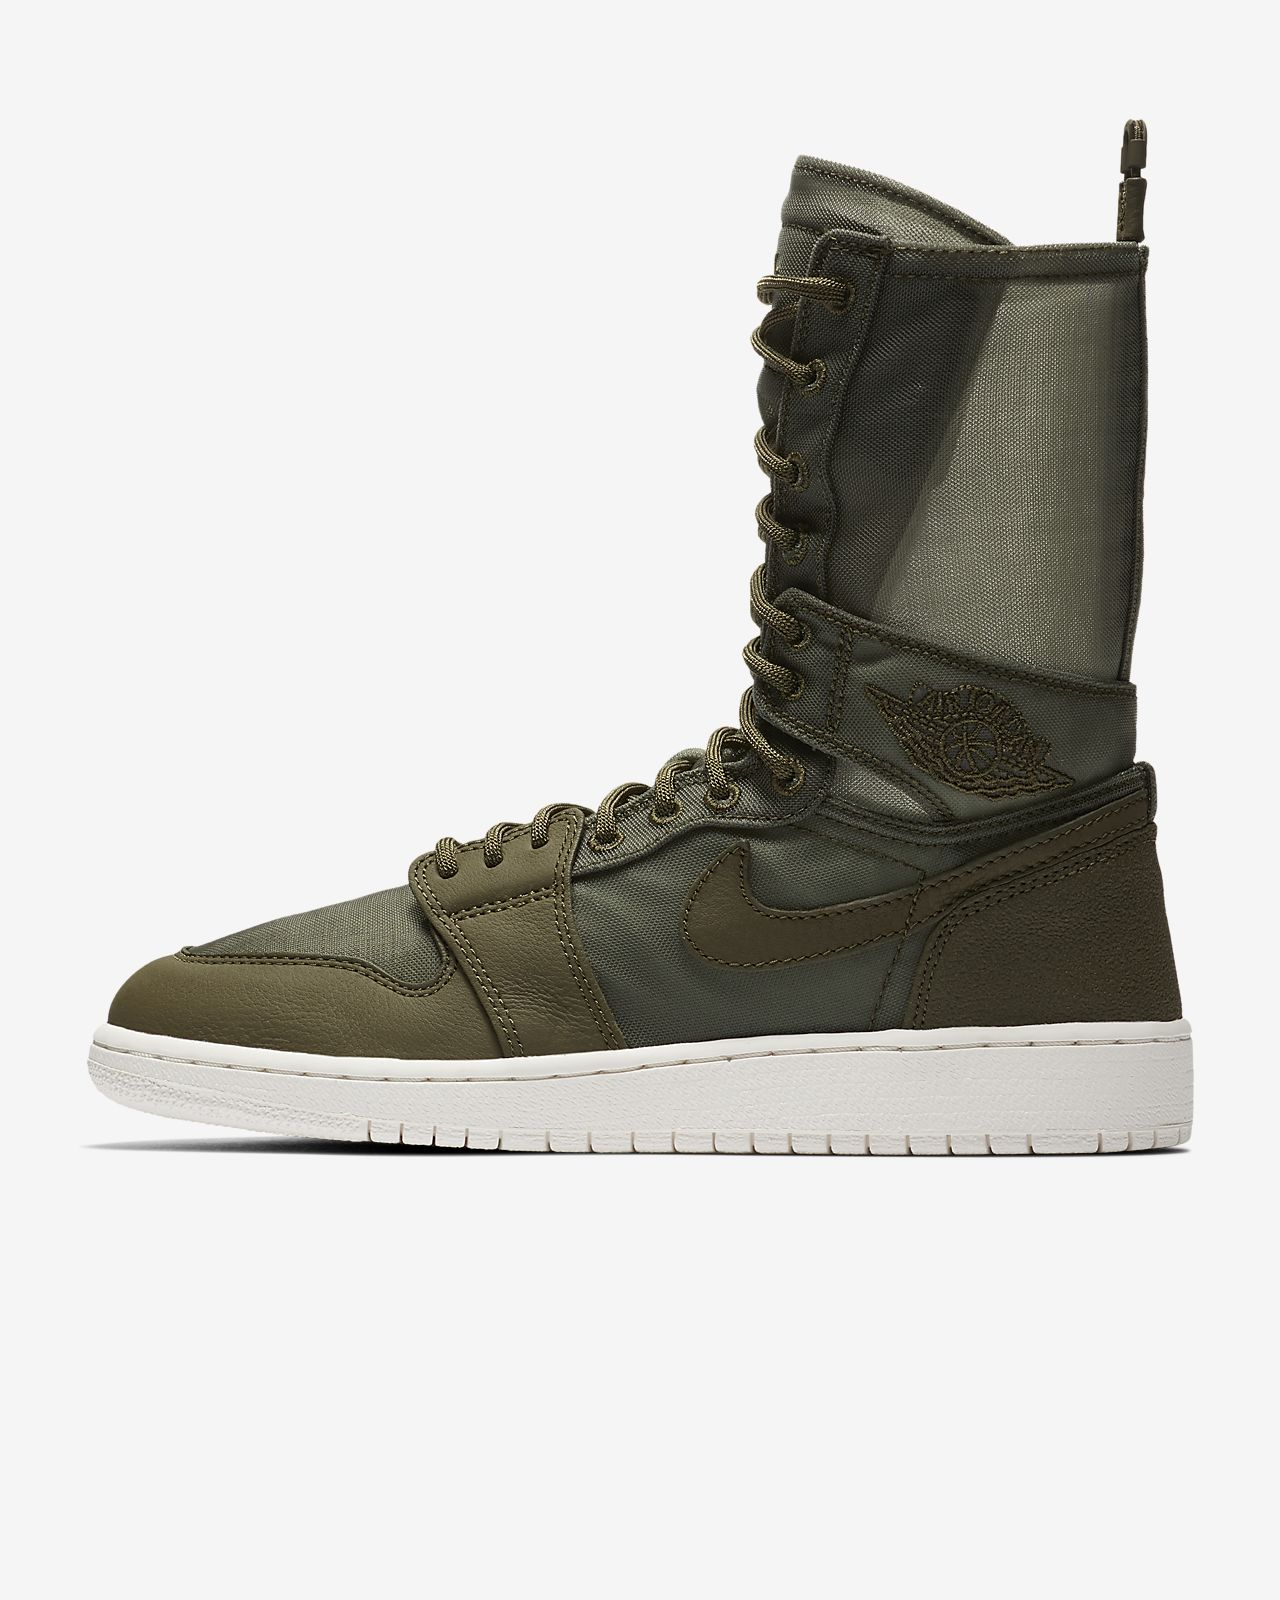 competitive price d9caf 72bb3 Air Jordan 1 Explorer XX Zapatillas - Mujer. Nike.com ES